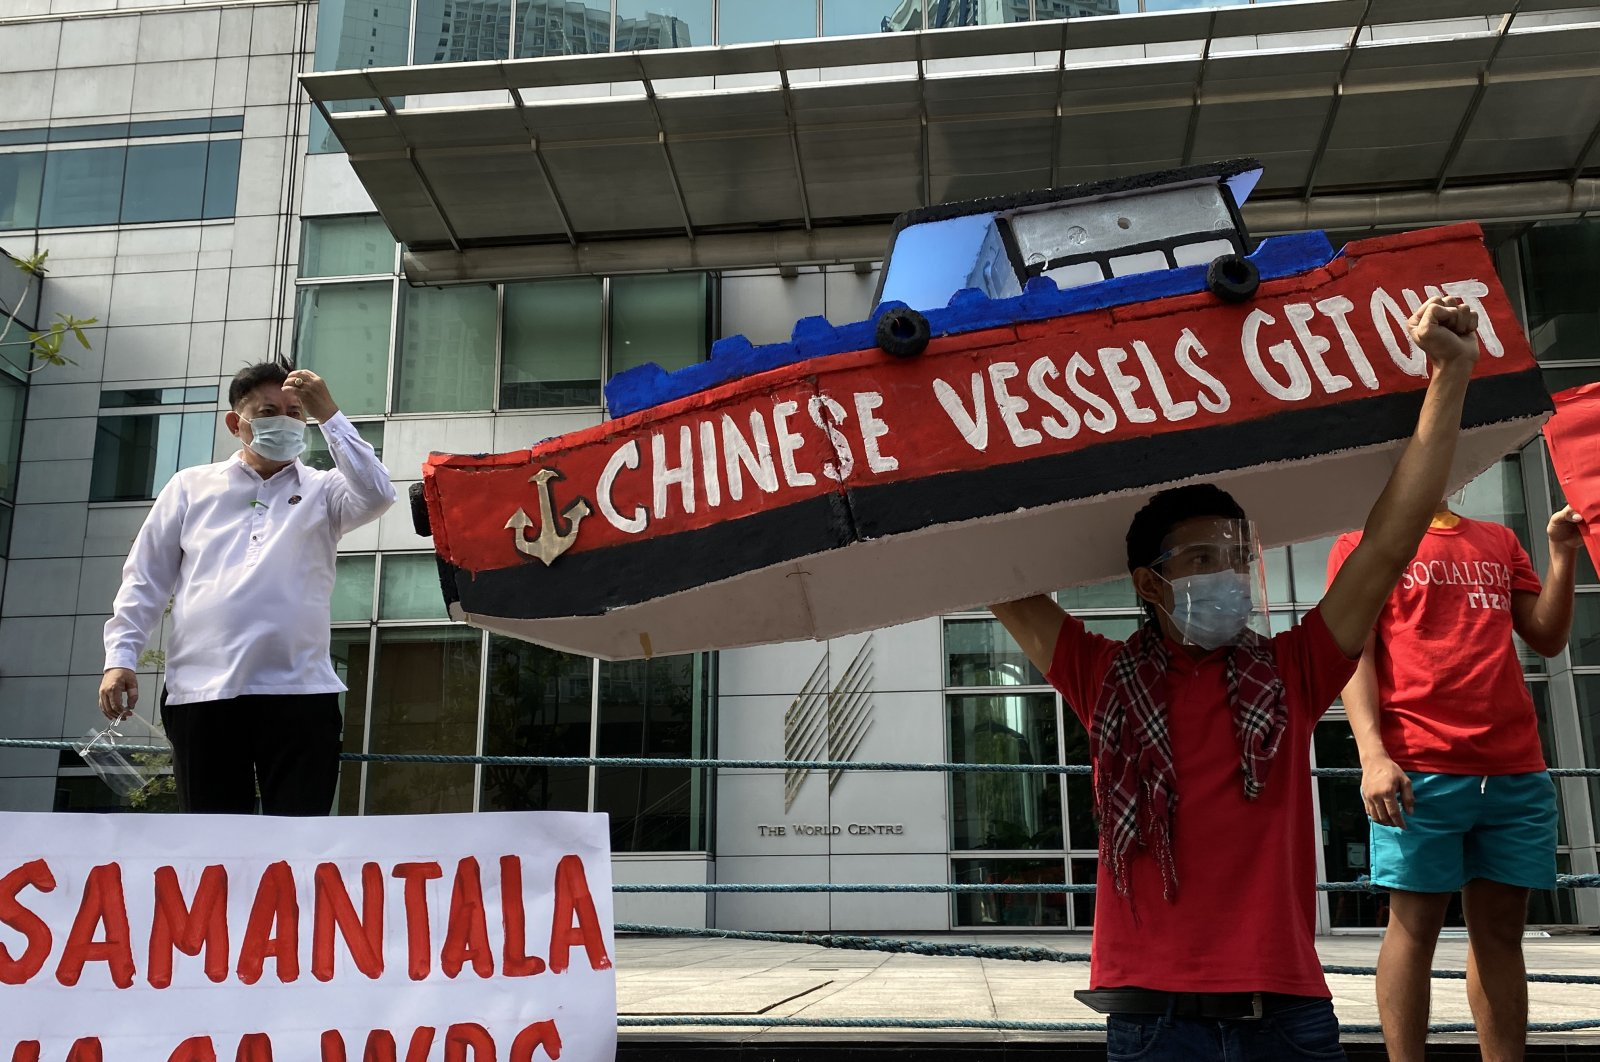 Filipino demonstrators stage a protest rally to denounce the continued intrusion of Chinese patrol ships inside the Philippine territory in the disputed South China sea, in front of the Chinese Consulate in Manila, Philippines, April 23, 2021. (EPA)